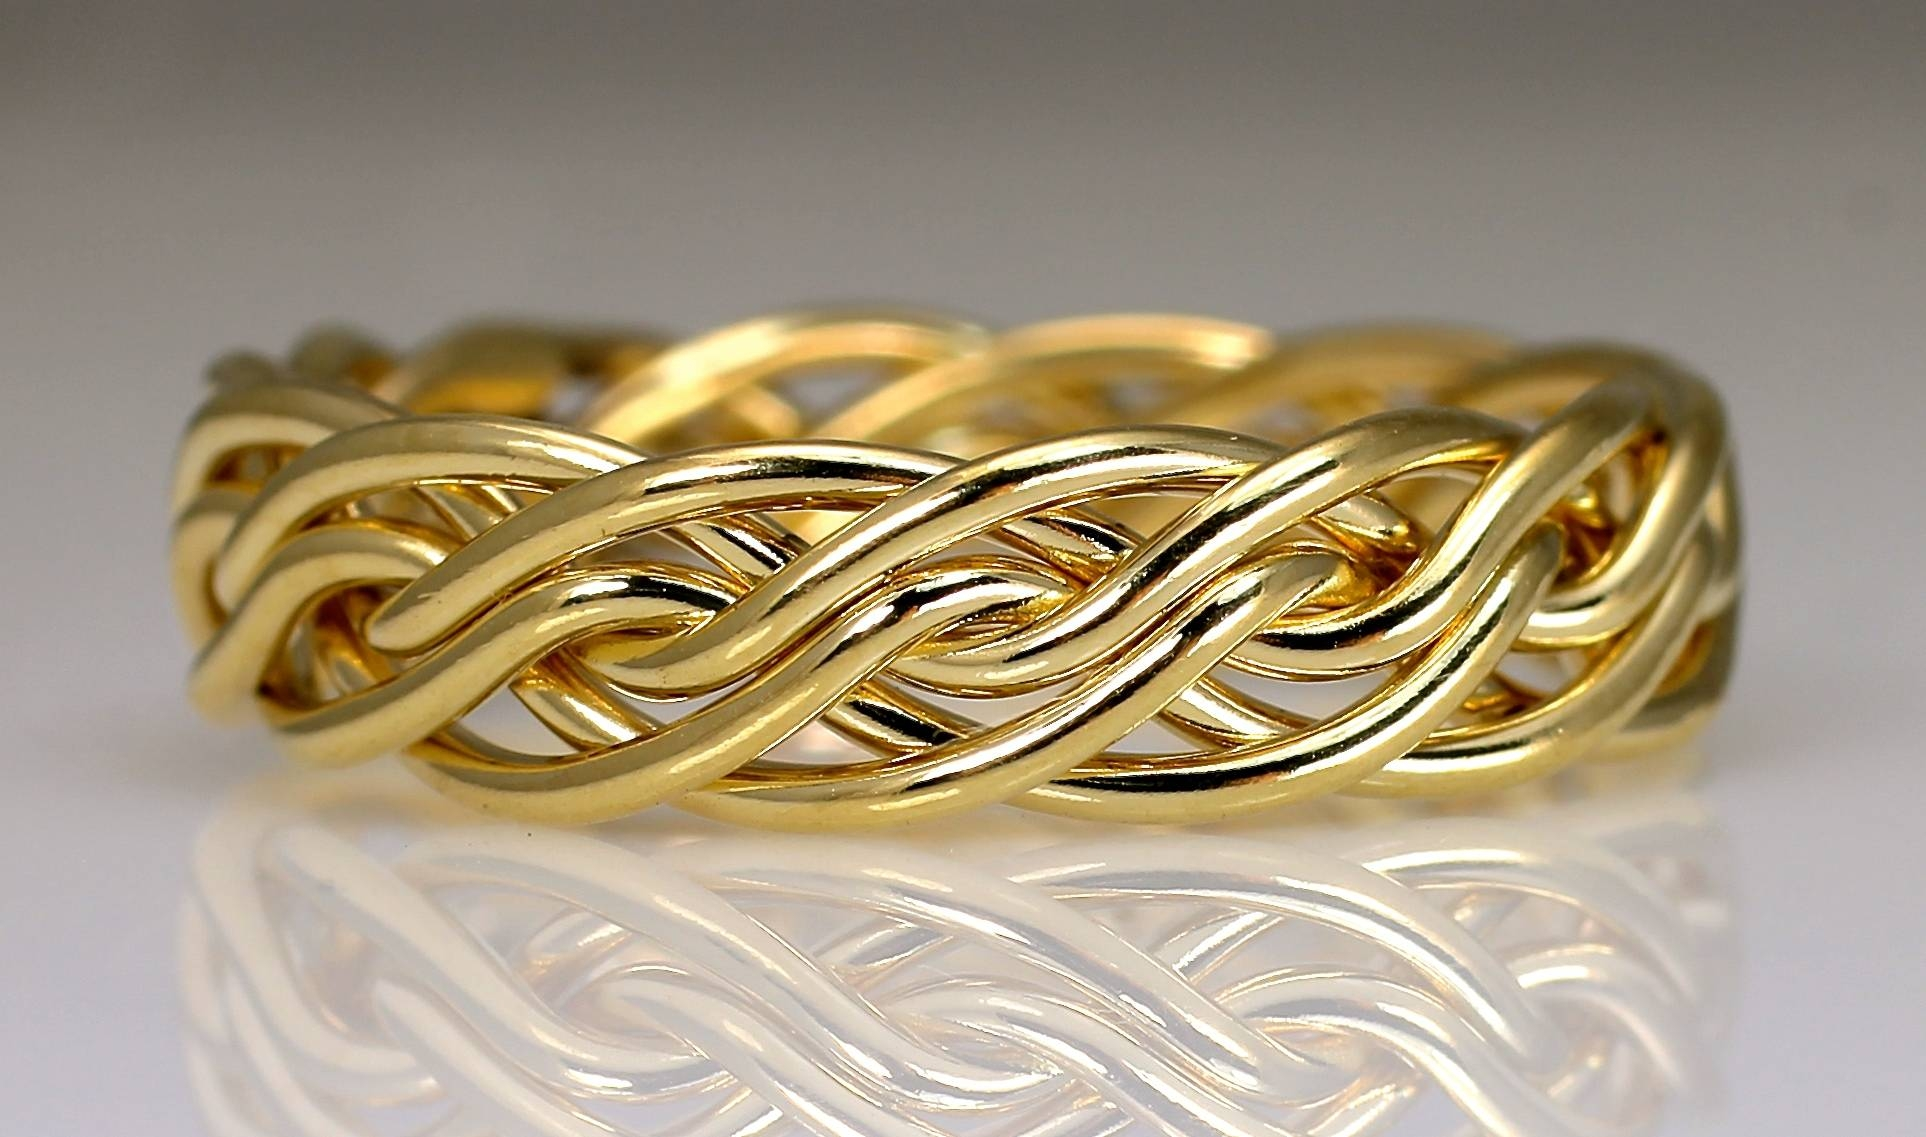 Six Strand Open Weave Braided Wedding Ringsartist Todd Alan Intended For Three Color Braided Wedding Bands (View 14 of 15)